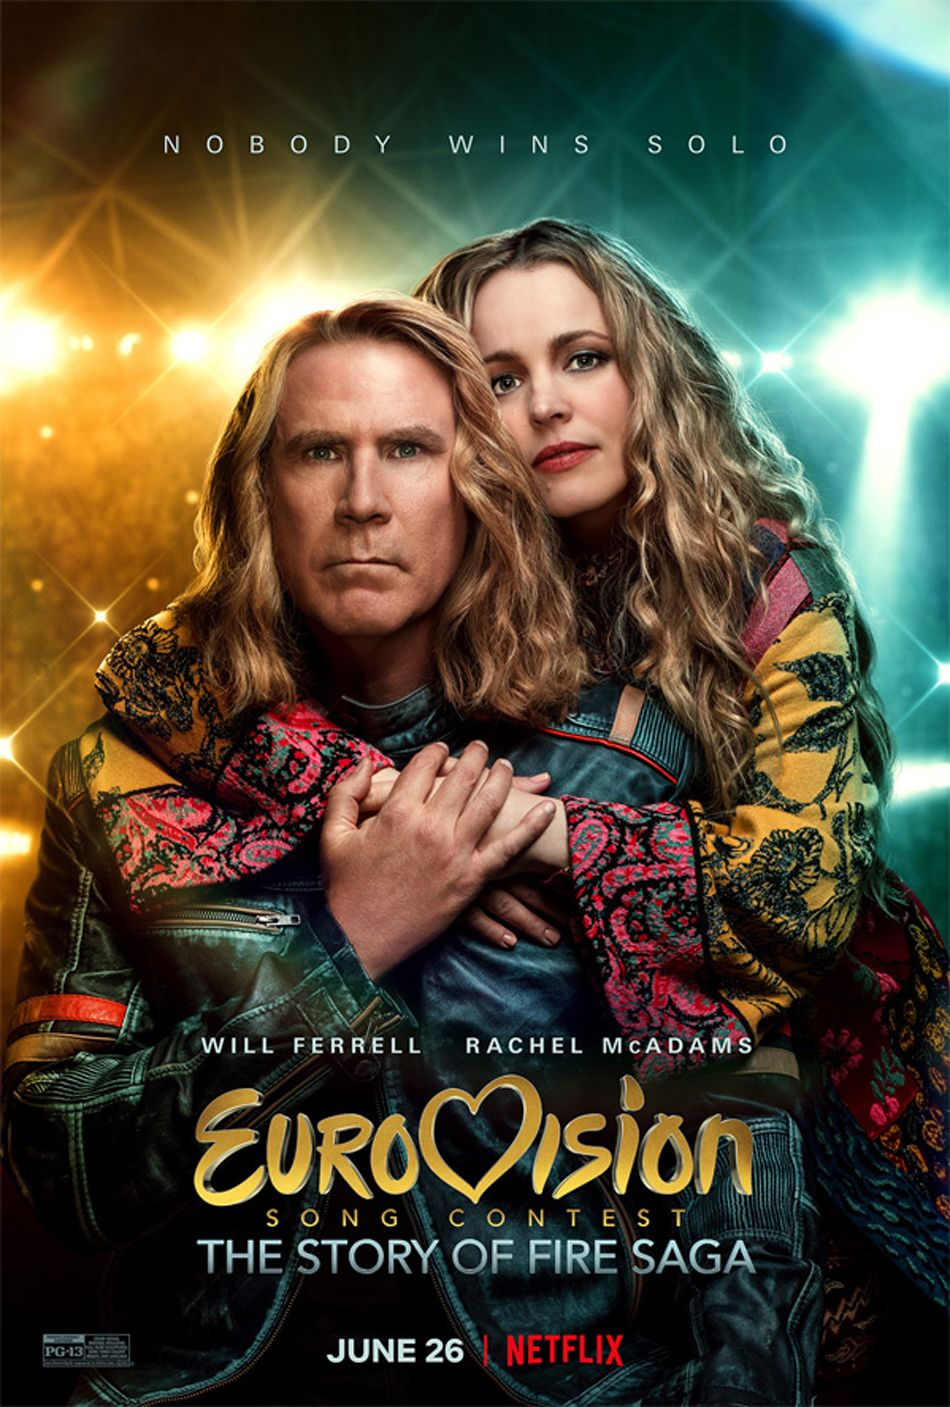 Eurovision Song Contest: The Story of Fire Saga Poster